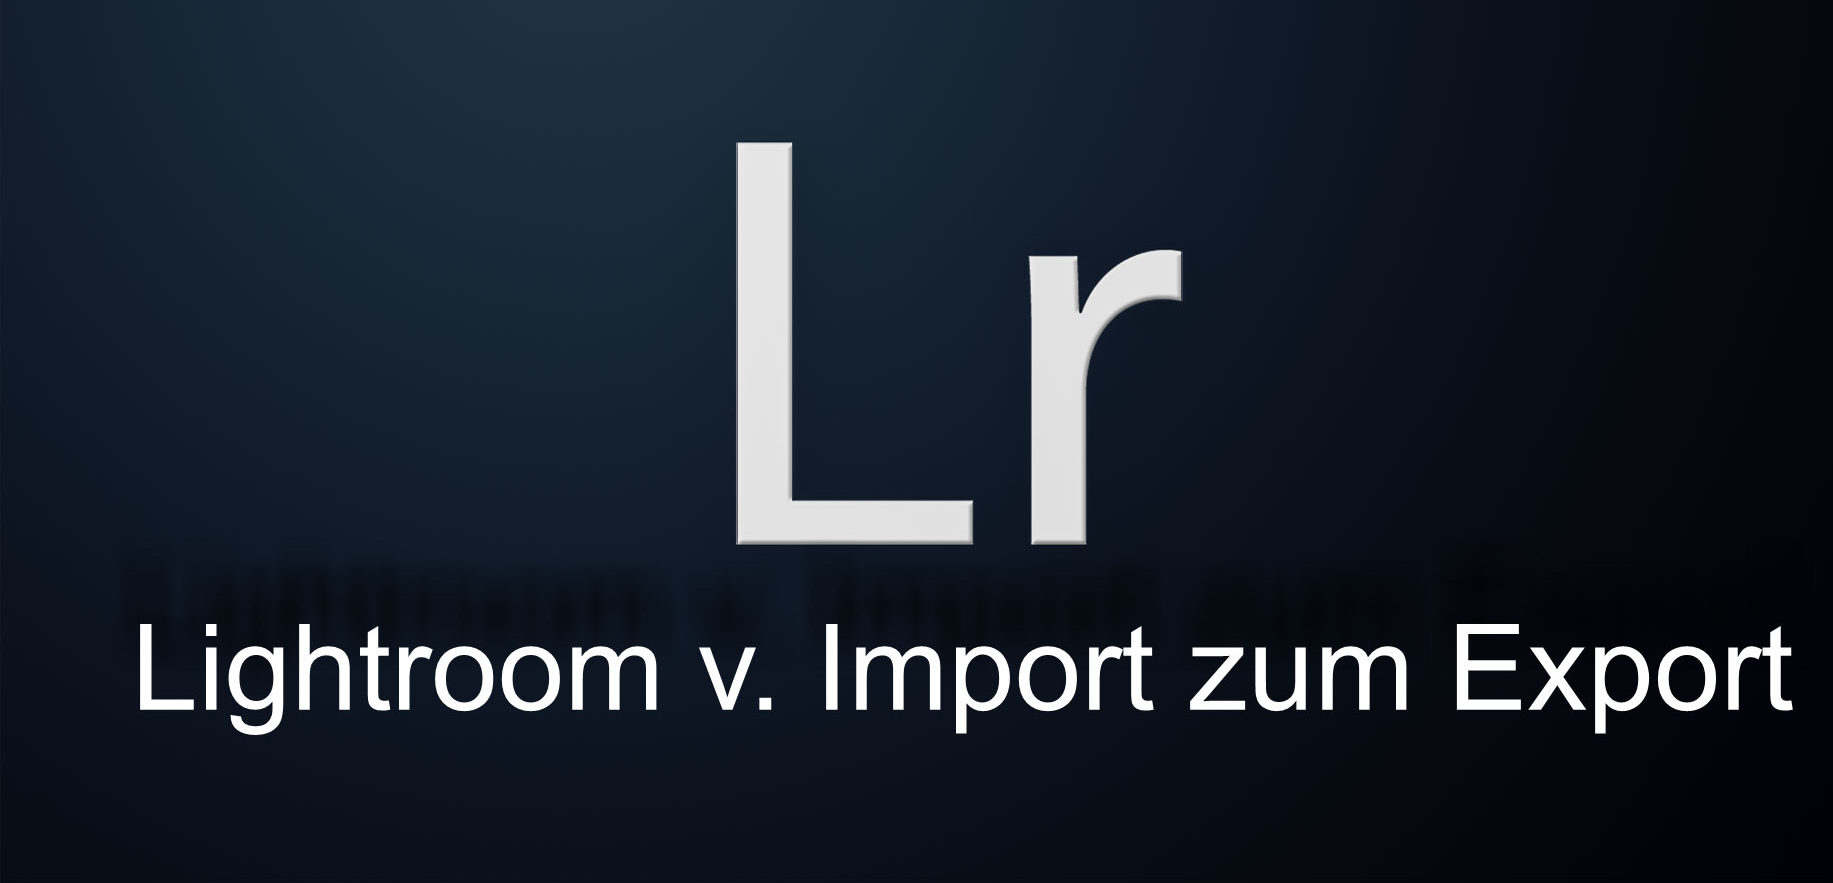 Lightroom v. Import zum Export, Teil 2,  techn. Anforderungen & Software-Voreinstellungen.